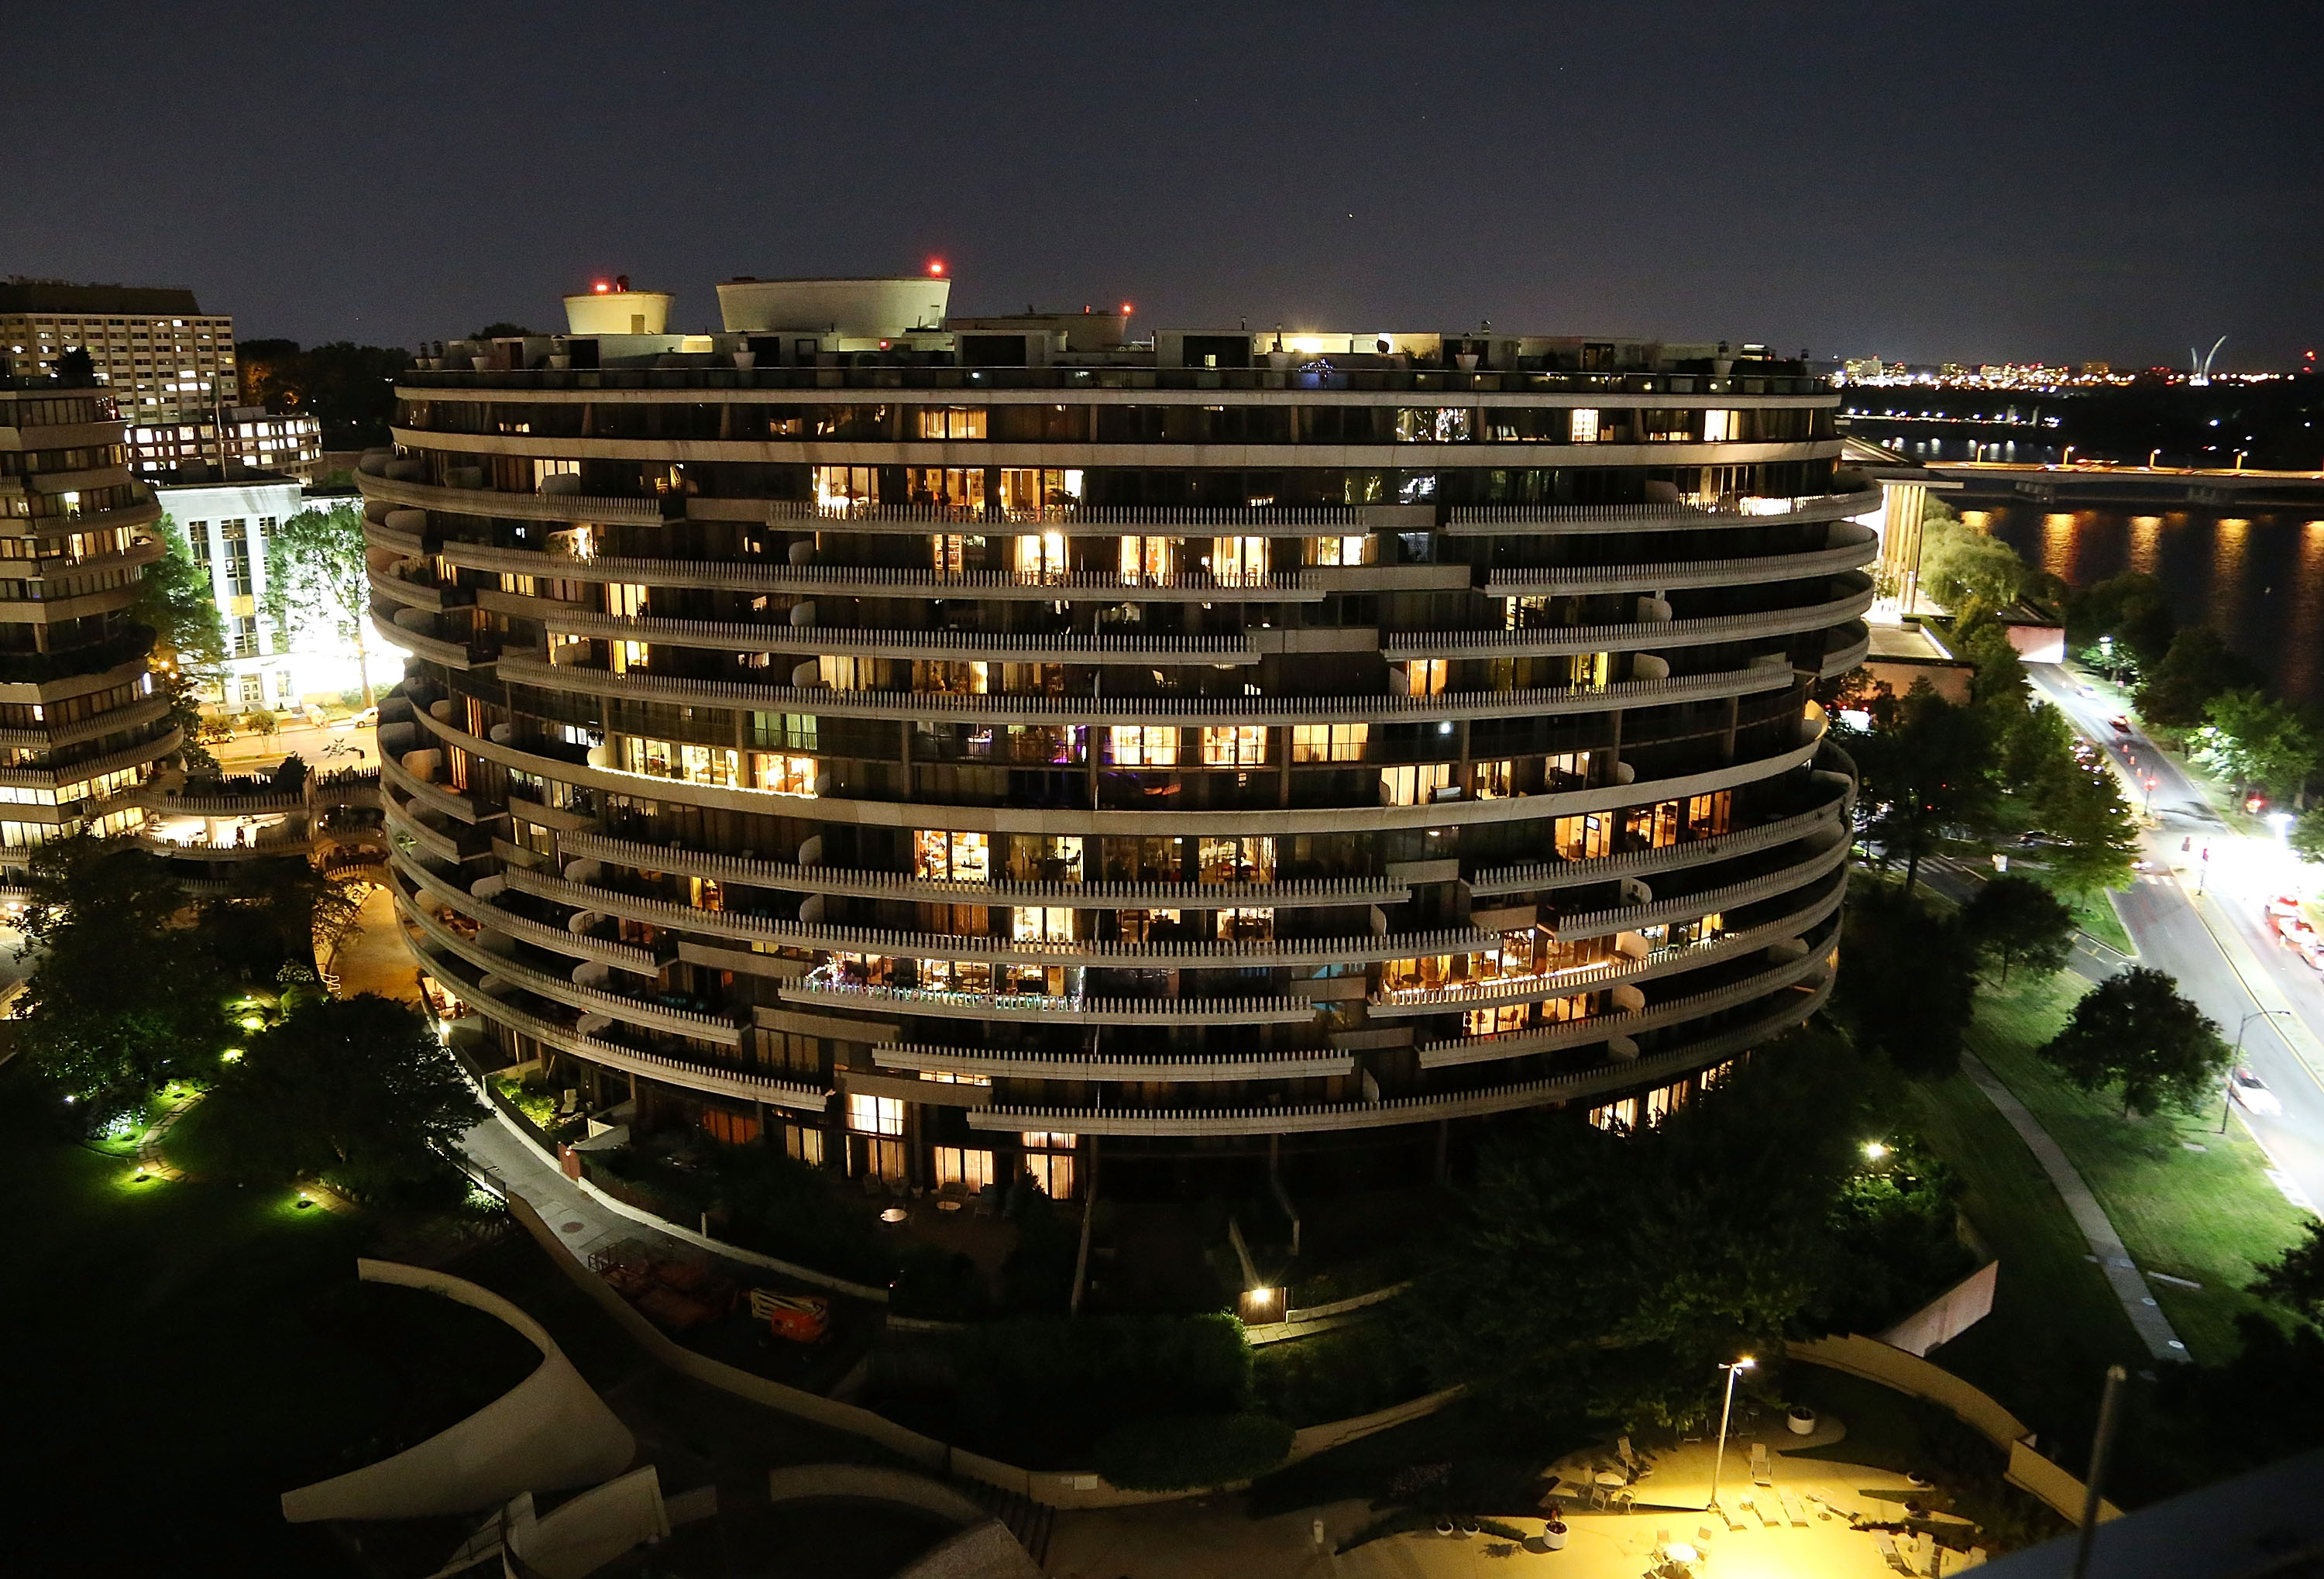 A rooftop view of The Watergate complex during the grand reopening party of the iconic Watergate Hotel on June 14, 2016 in Washington, DC.  (Photo by Paul Morigi/Getty Images for The Watergate Hotel)